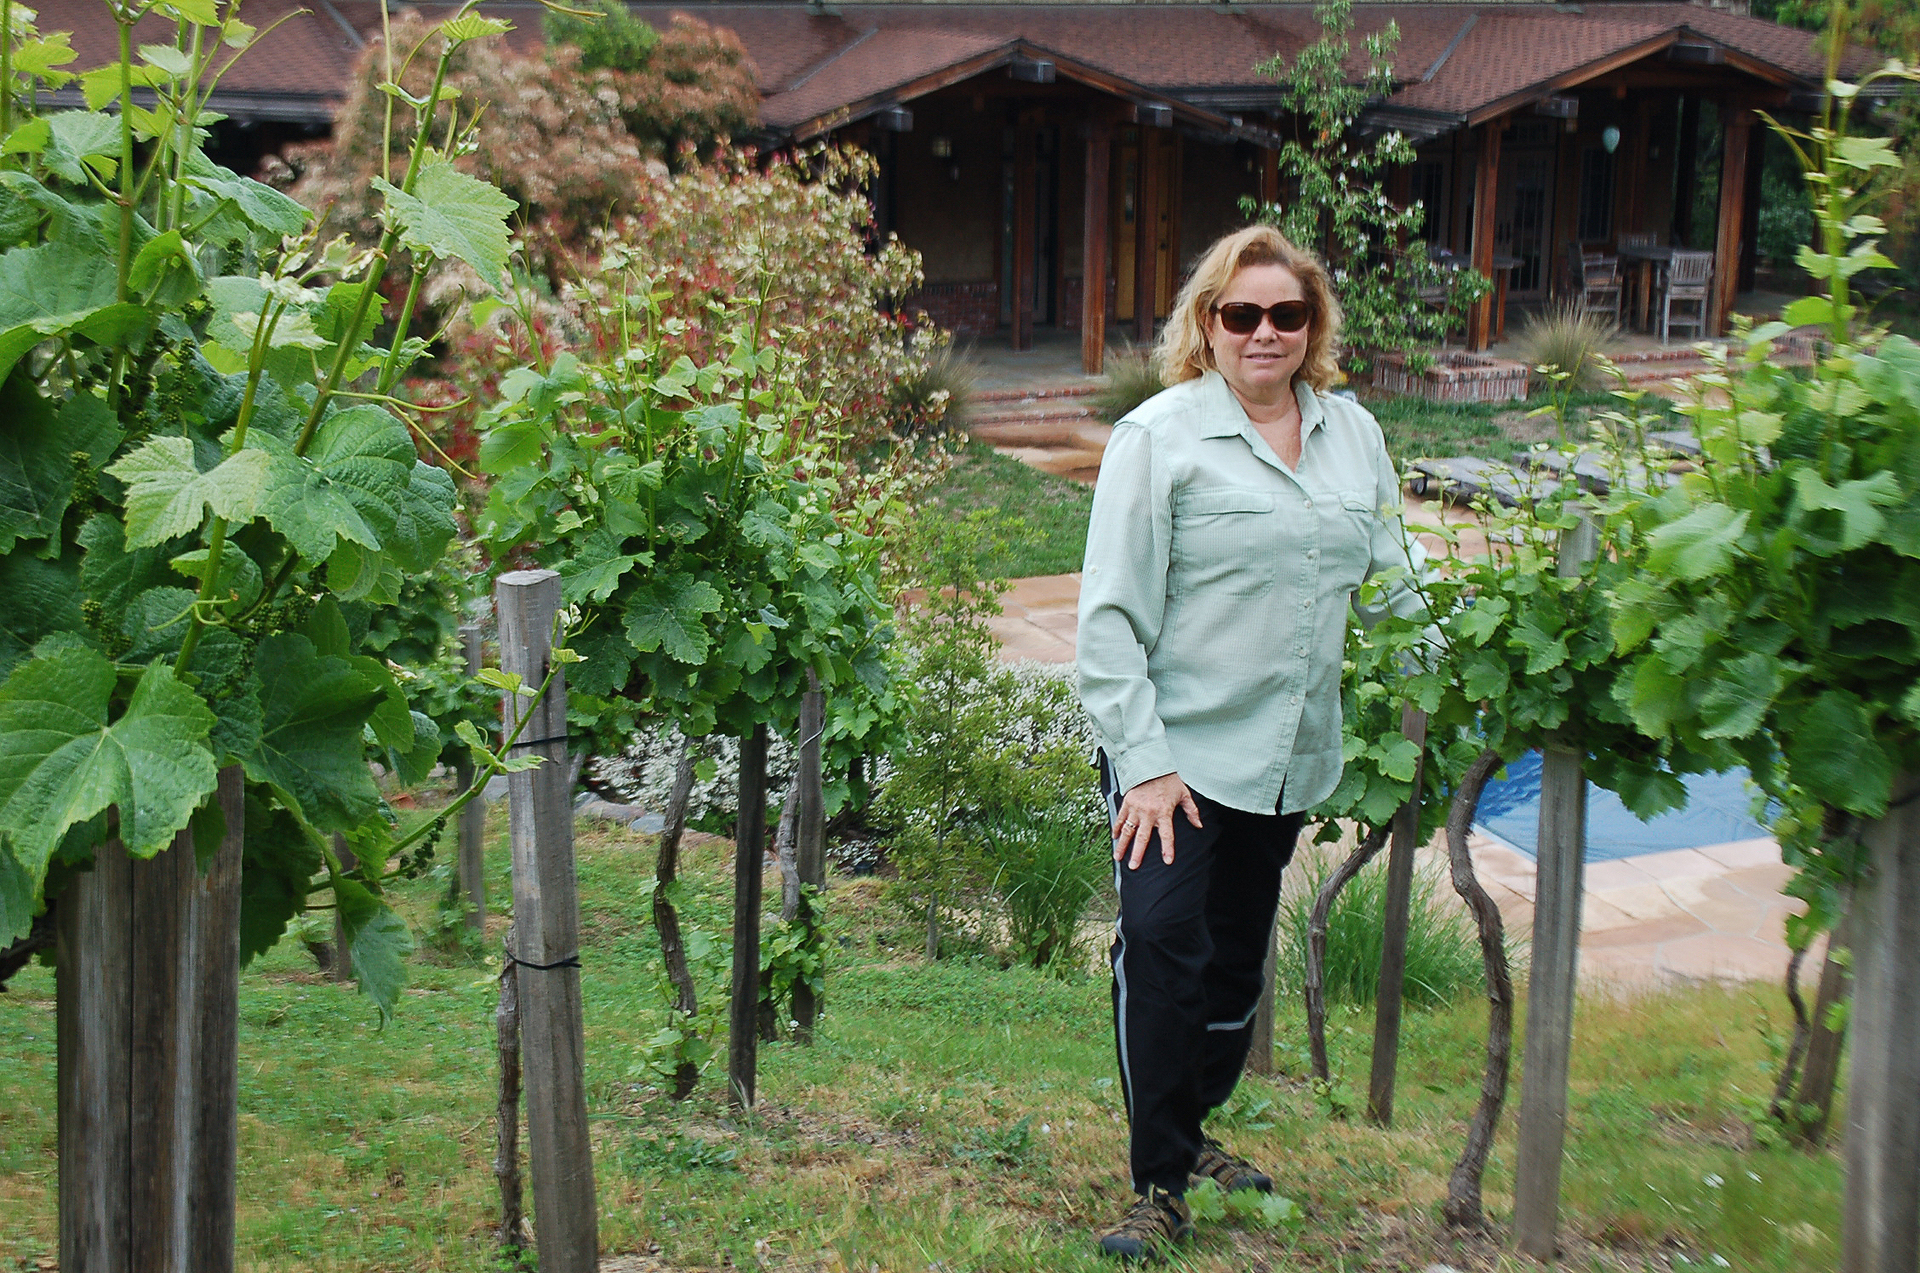 Vineyard manager/winemaker Nancy Freire specified and planted this pinot noir vineyard in a cool spot in Portola Valley, where the vines surround a large estate and pool.